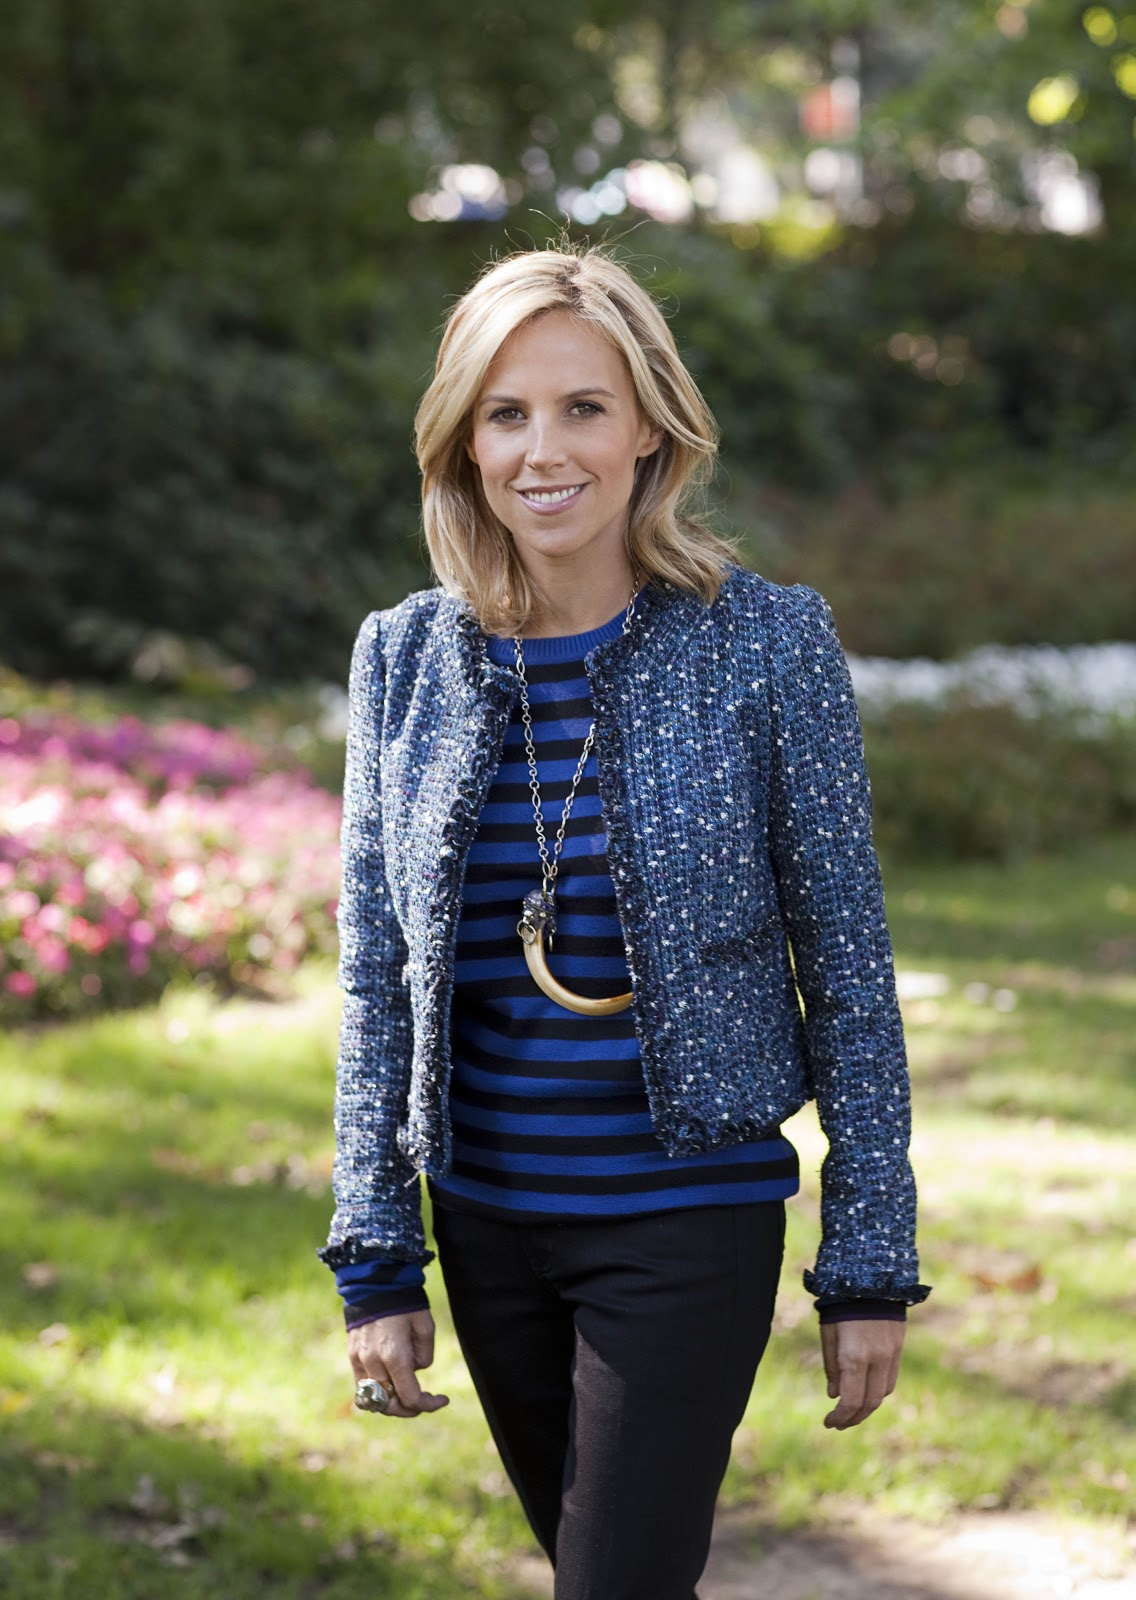 Tory Burch is CEO and designer of Tory Burch, an American lifestyle brand known for color, print, and eclectic blogdumbwebcs.tk in Valley Forge, Pennsylvania, Tory Burch graduated from the University of Pennsylvania with a degree in art history, and then moved to .